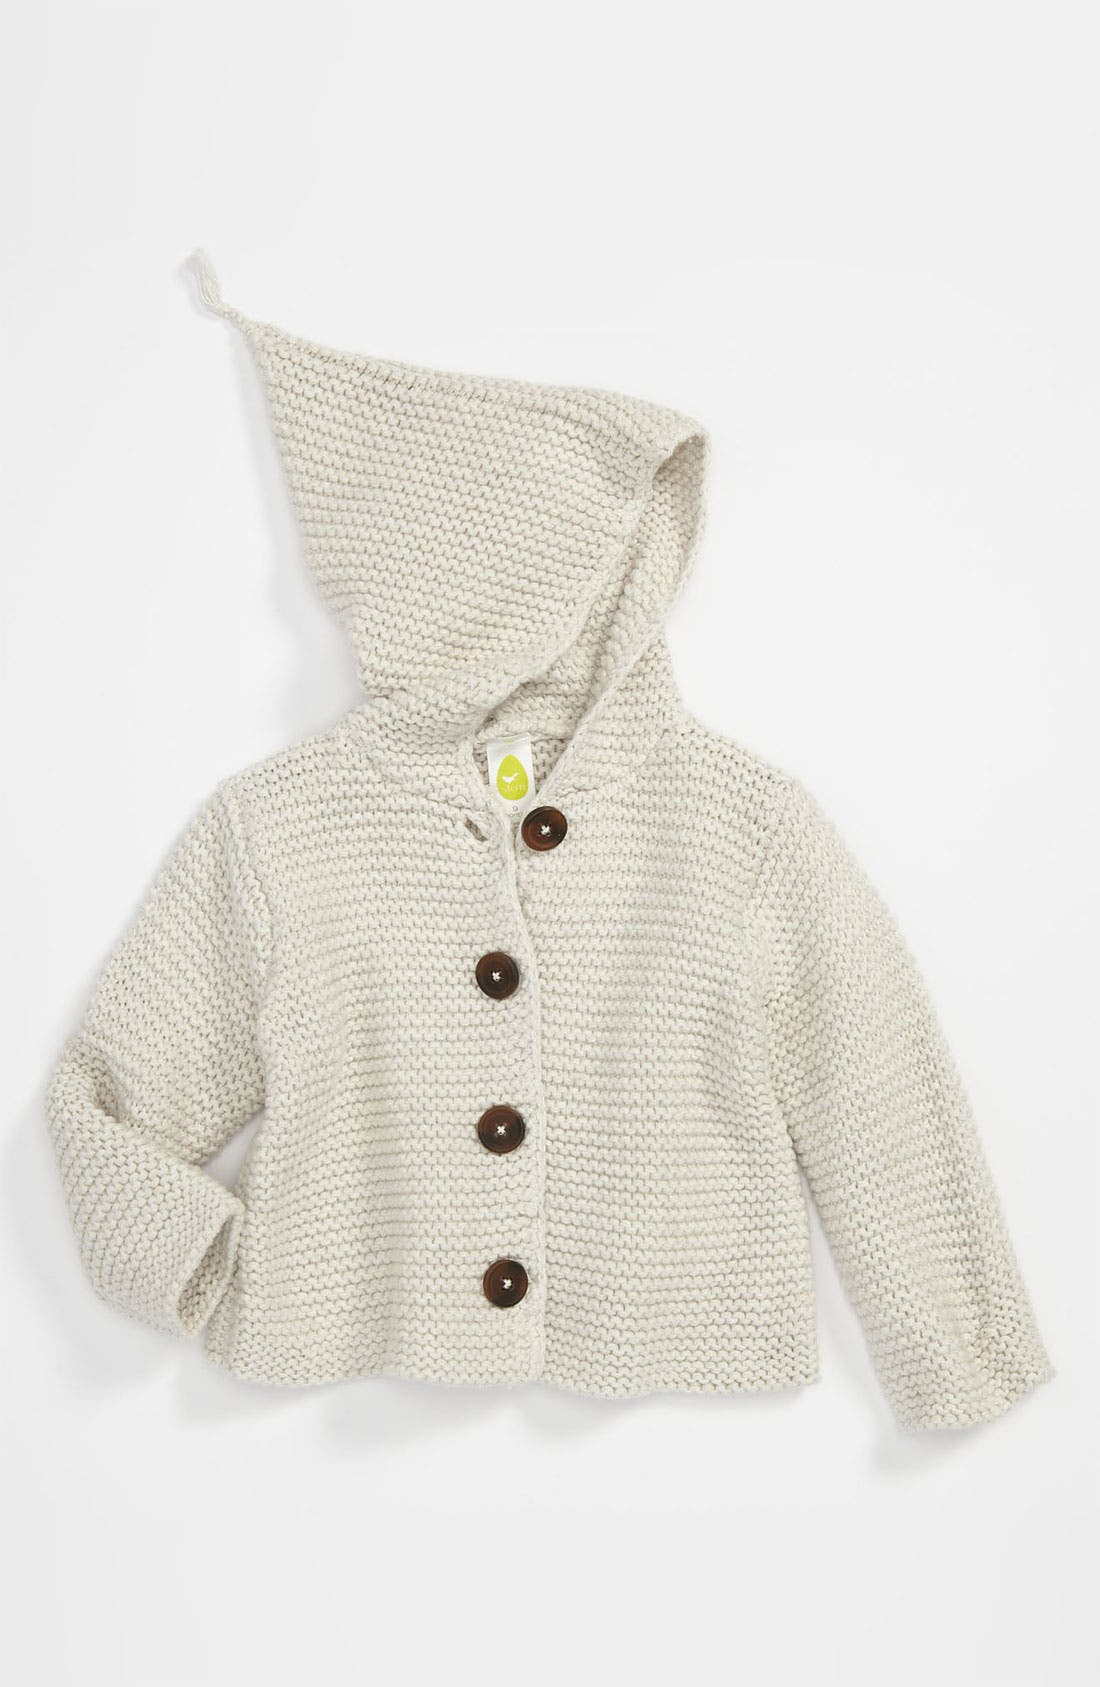 Alternate Image 1 Selected - Stem Baby 'Lofty' Organic Cotton Hooded Cardigan (Baby Boys) (Nordstrom Exclusive)